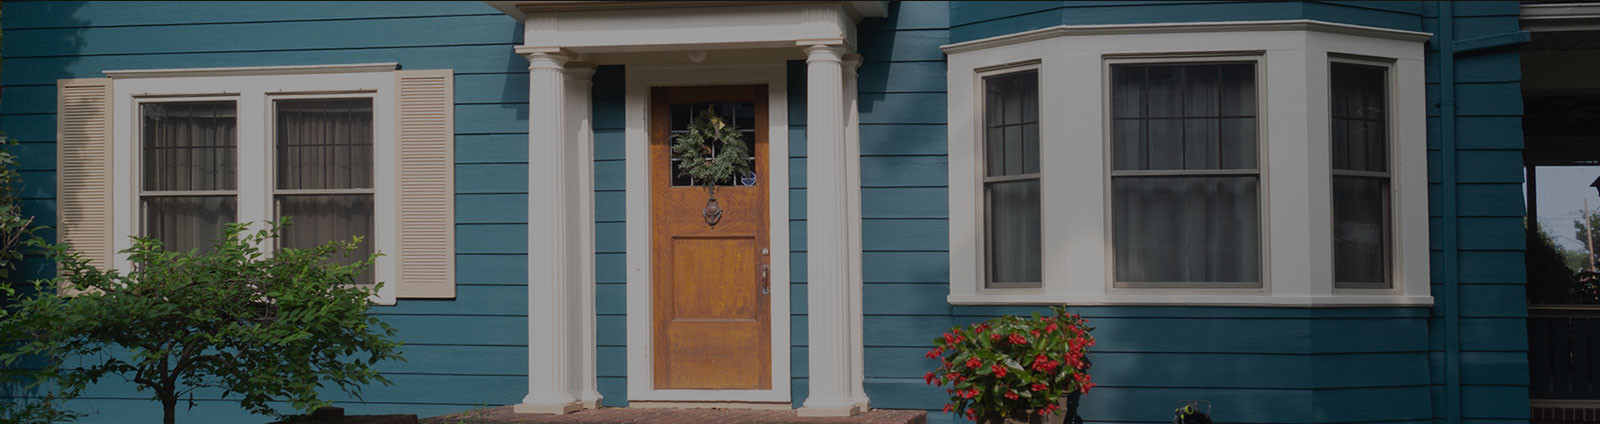 Exterior Home Painting Services in Rochester NY